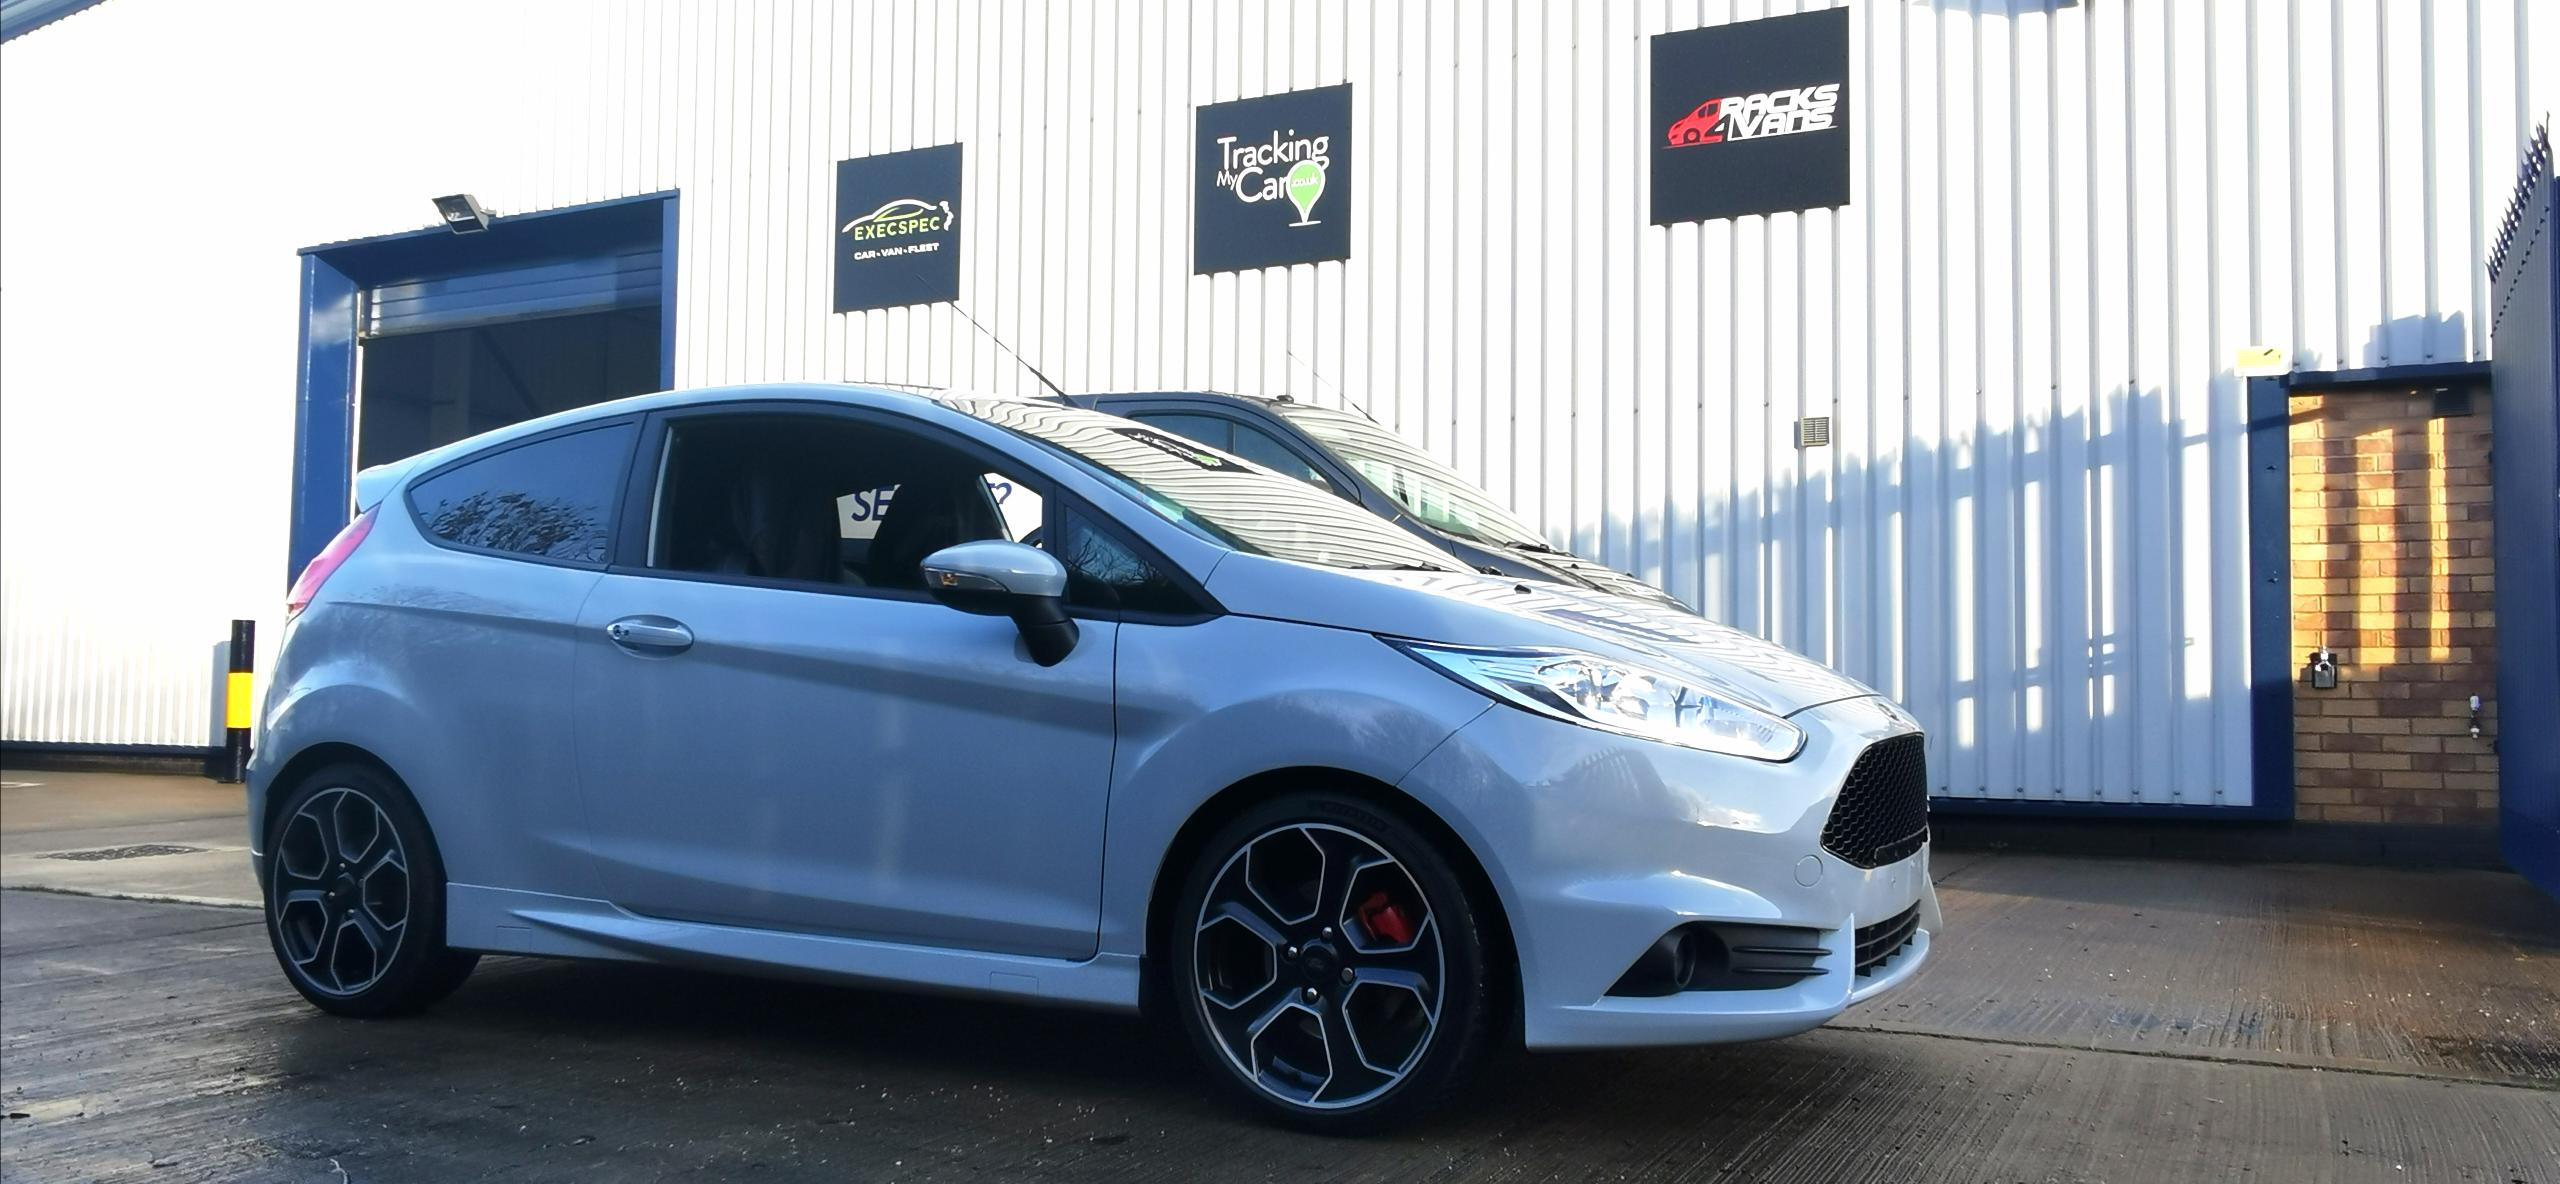 Ford Fiesta ST200 Security Upgrade with the StarLine S96 Alarm, immobilisation & tracking system